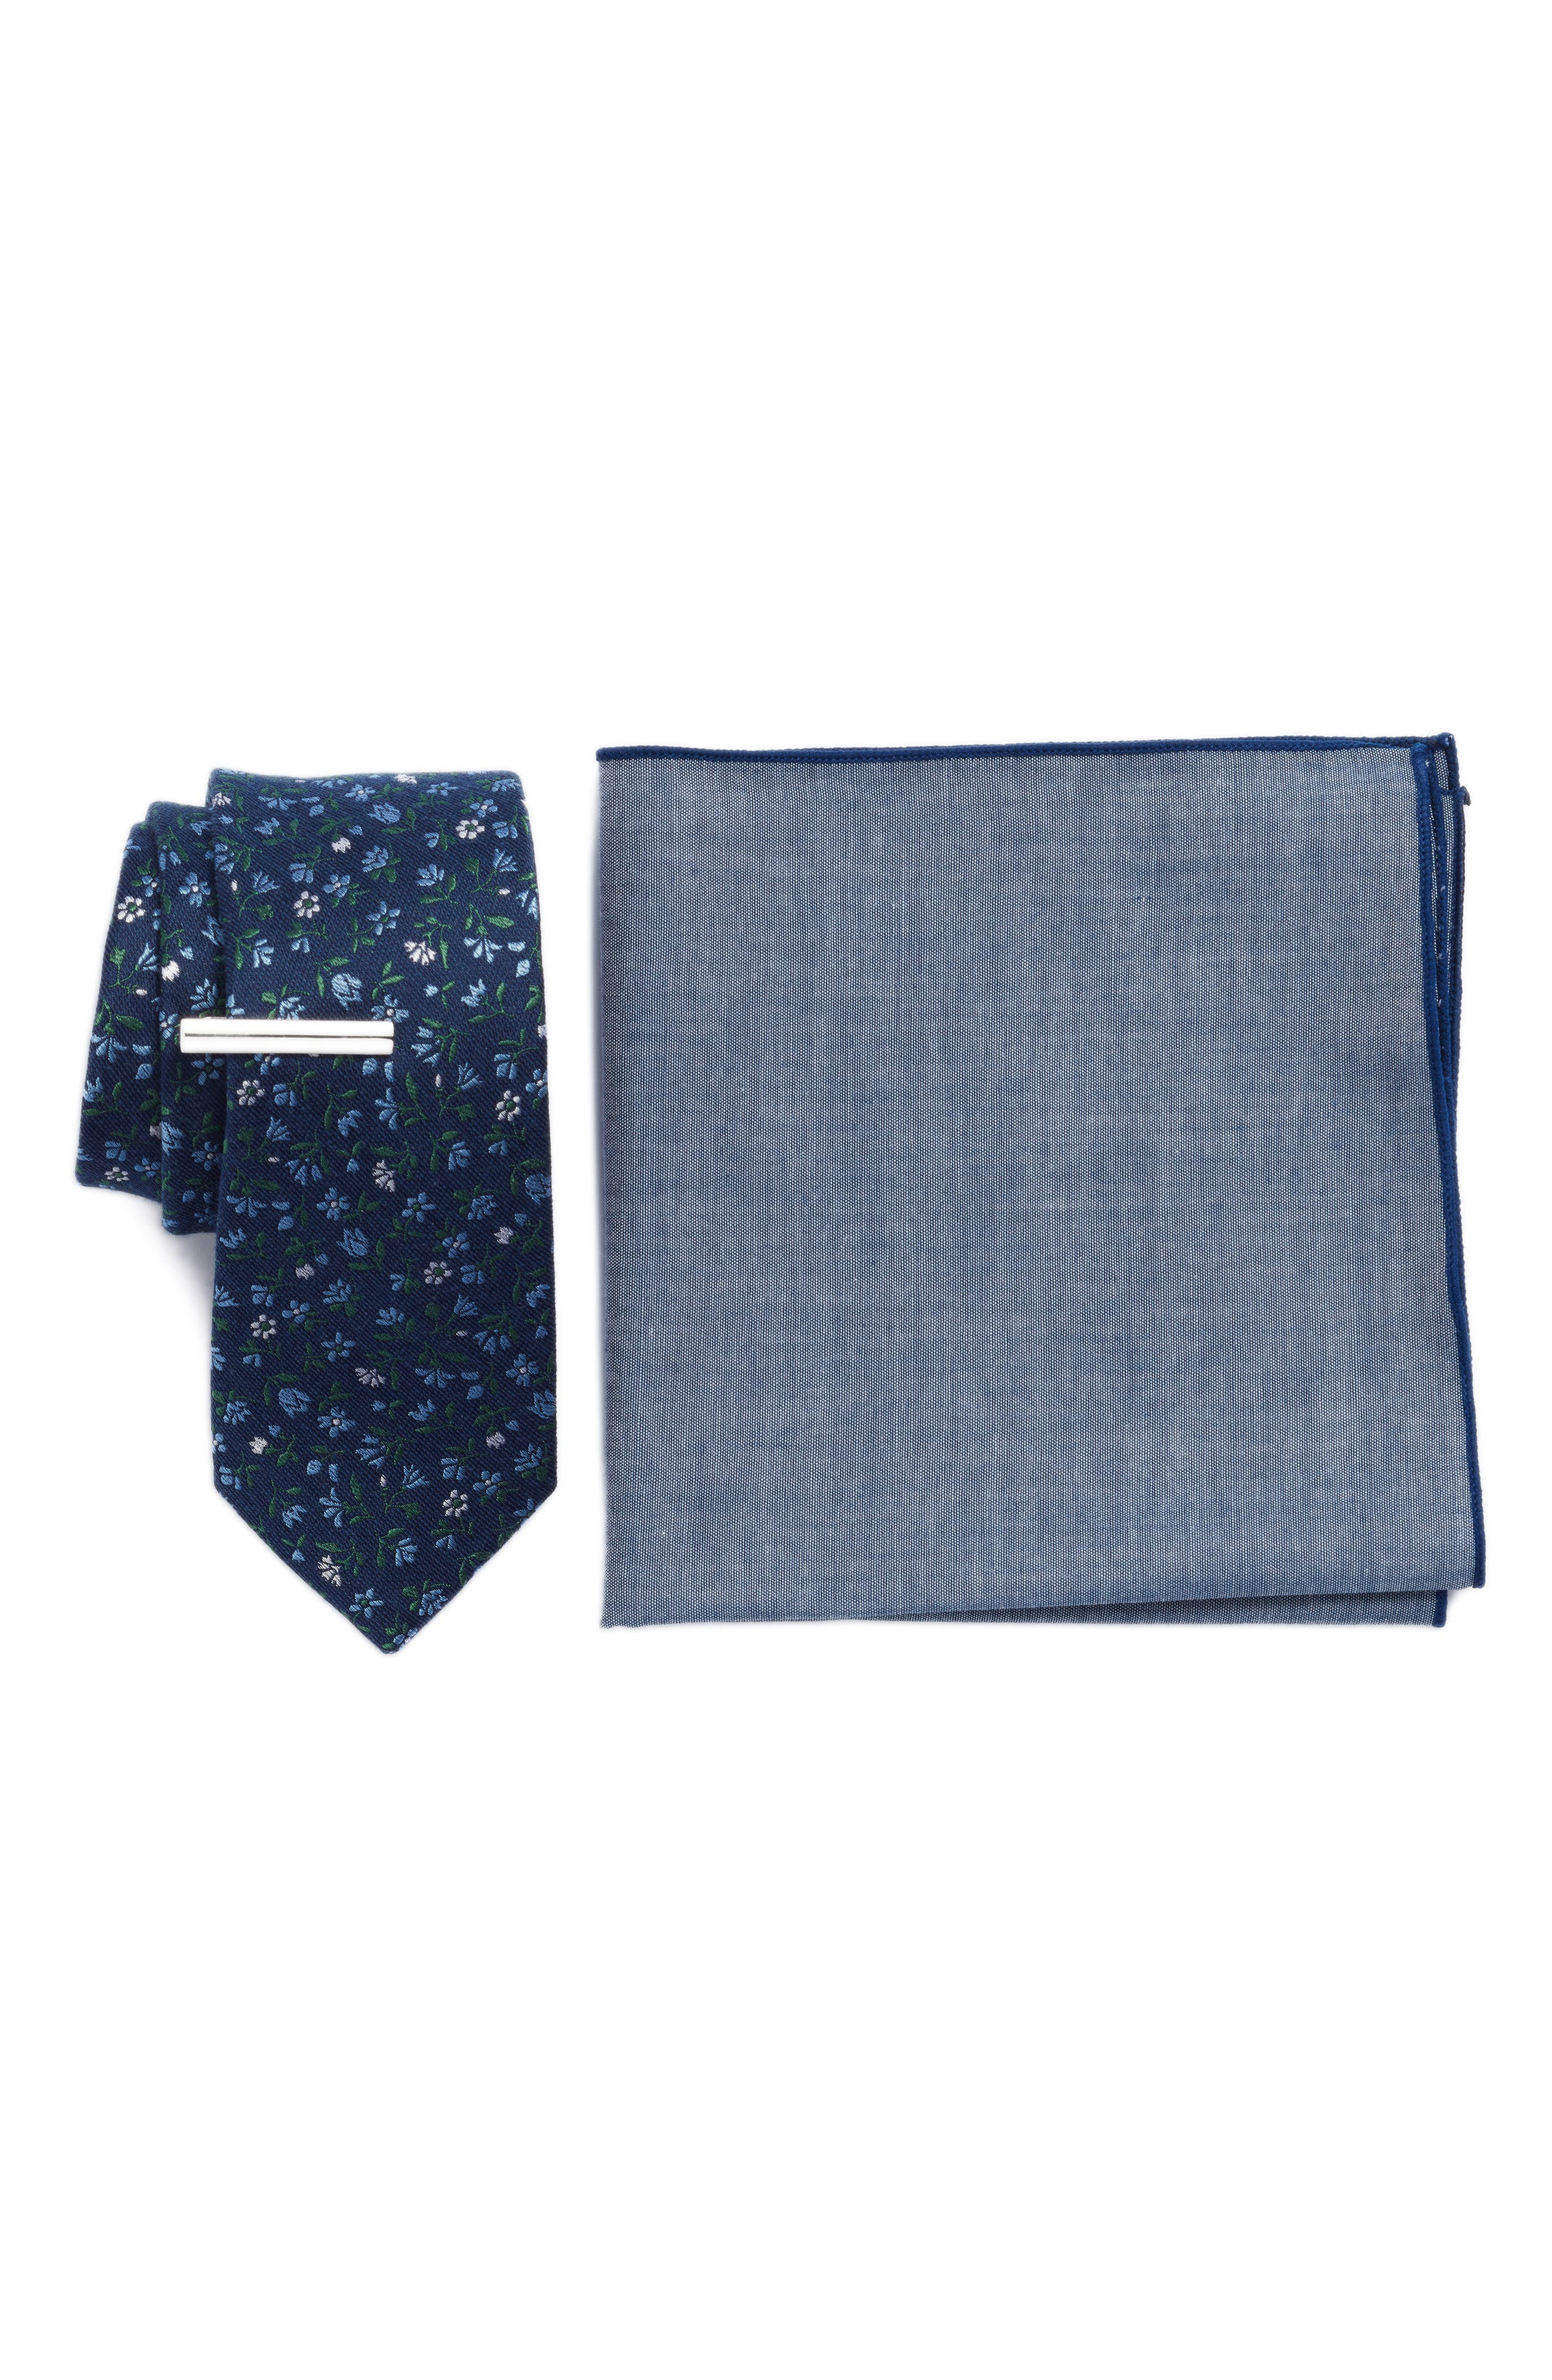 Floral Acres 3-Piece Skinny Tie Style Box,                             Main thumbnail 1, color,                             Navy